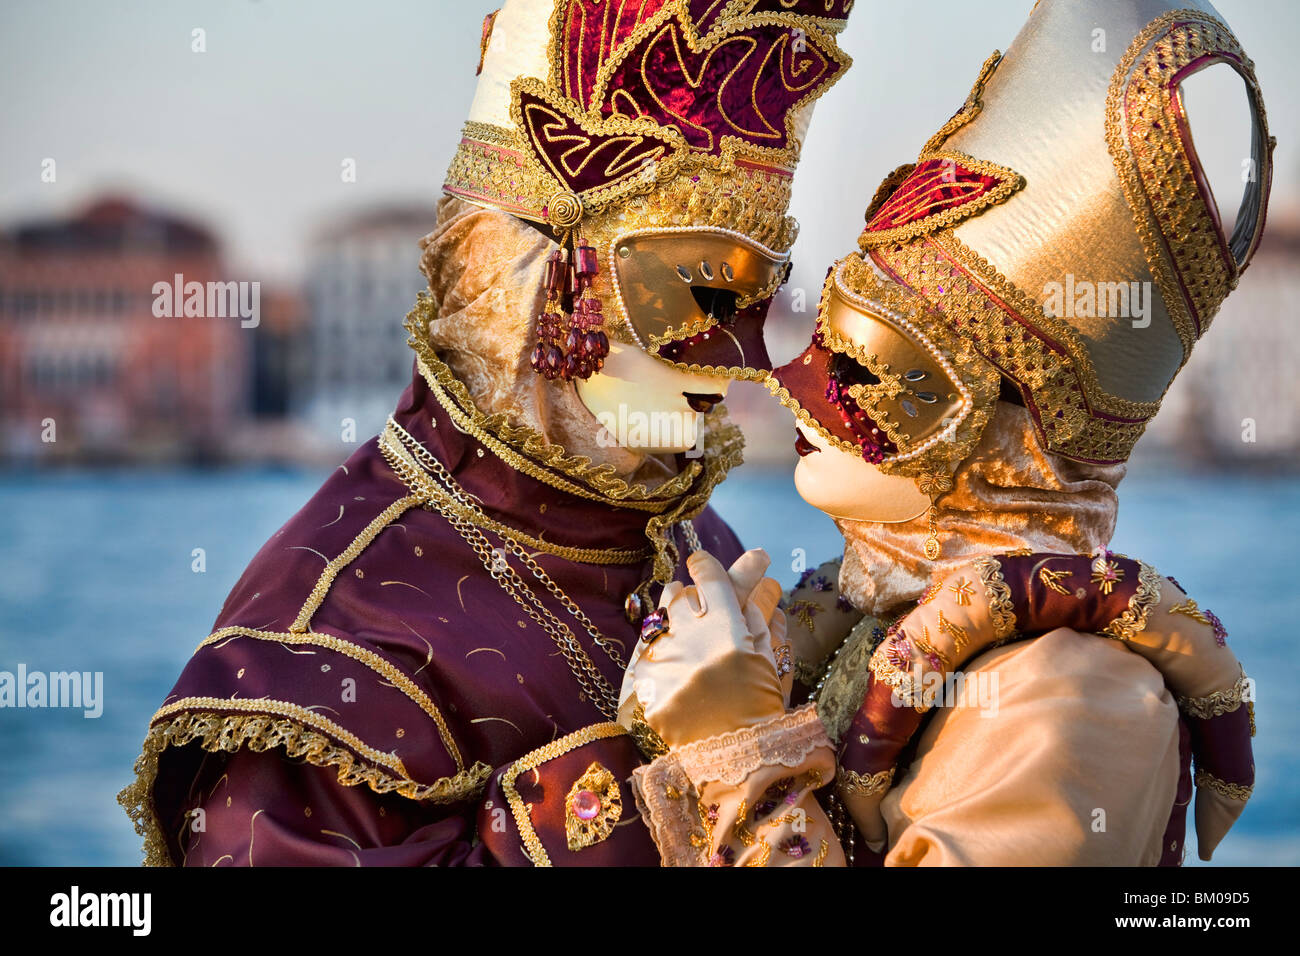 Couple wearing costumes embracing at Carnival in Venice, Italy Stock Photo